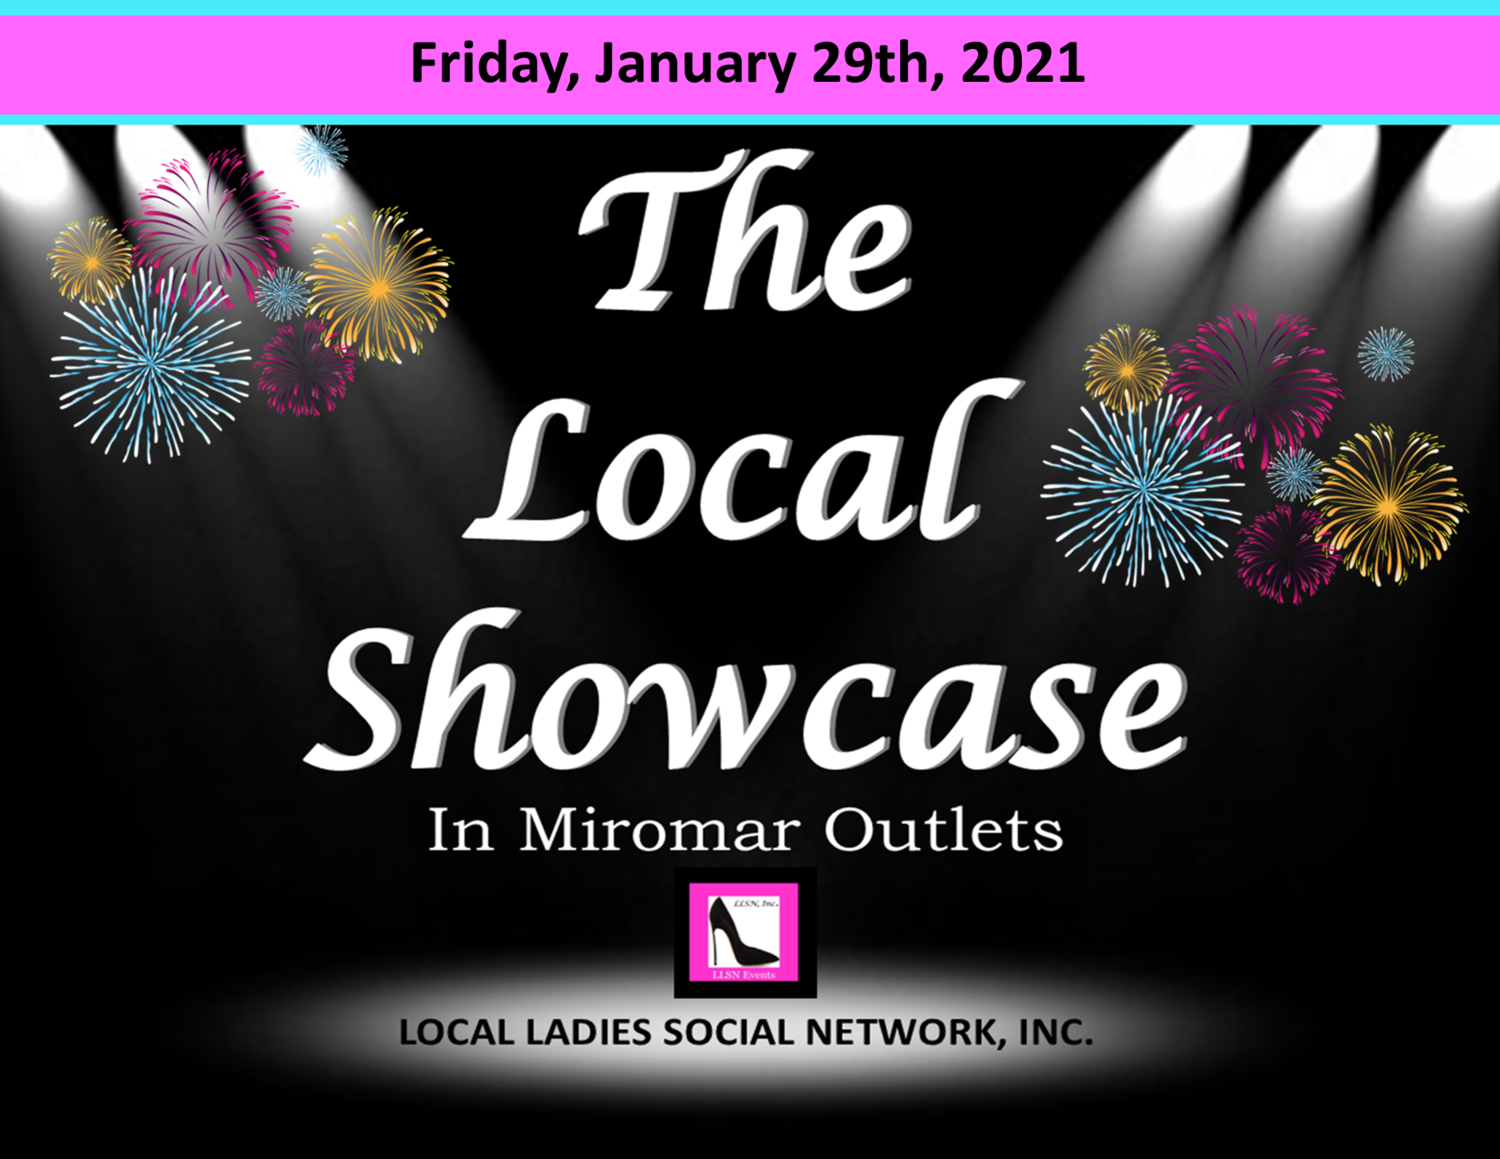 Friday, January 29th 2021 11am-7pm